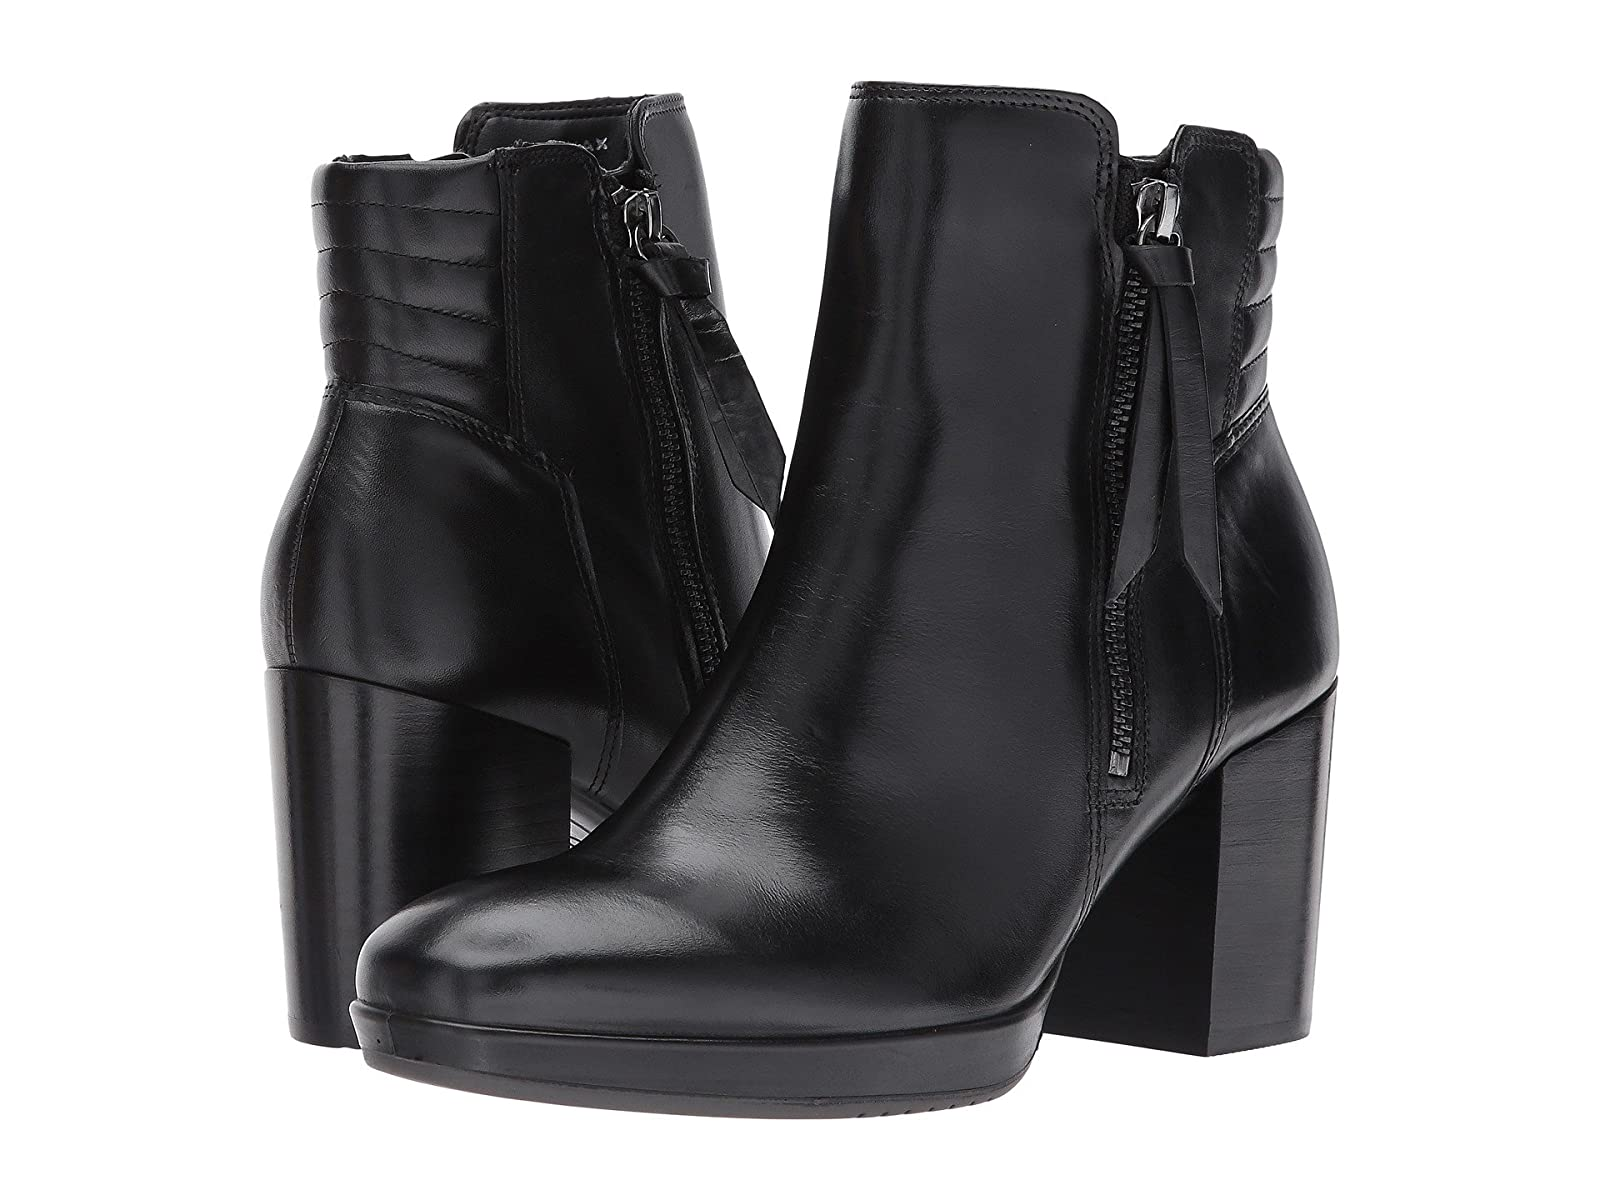 ECCO Shape 55 Chalet Mid BootCheap and distinctive eye-catching shoes